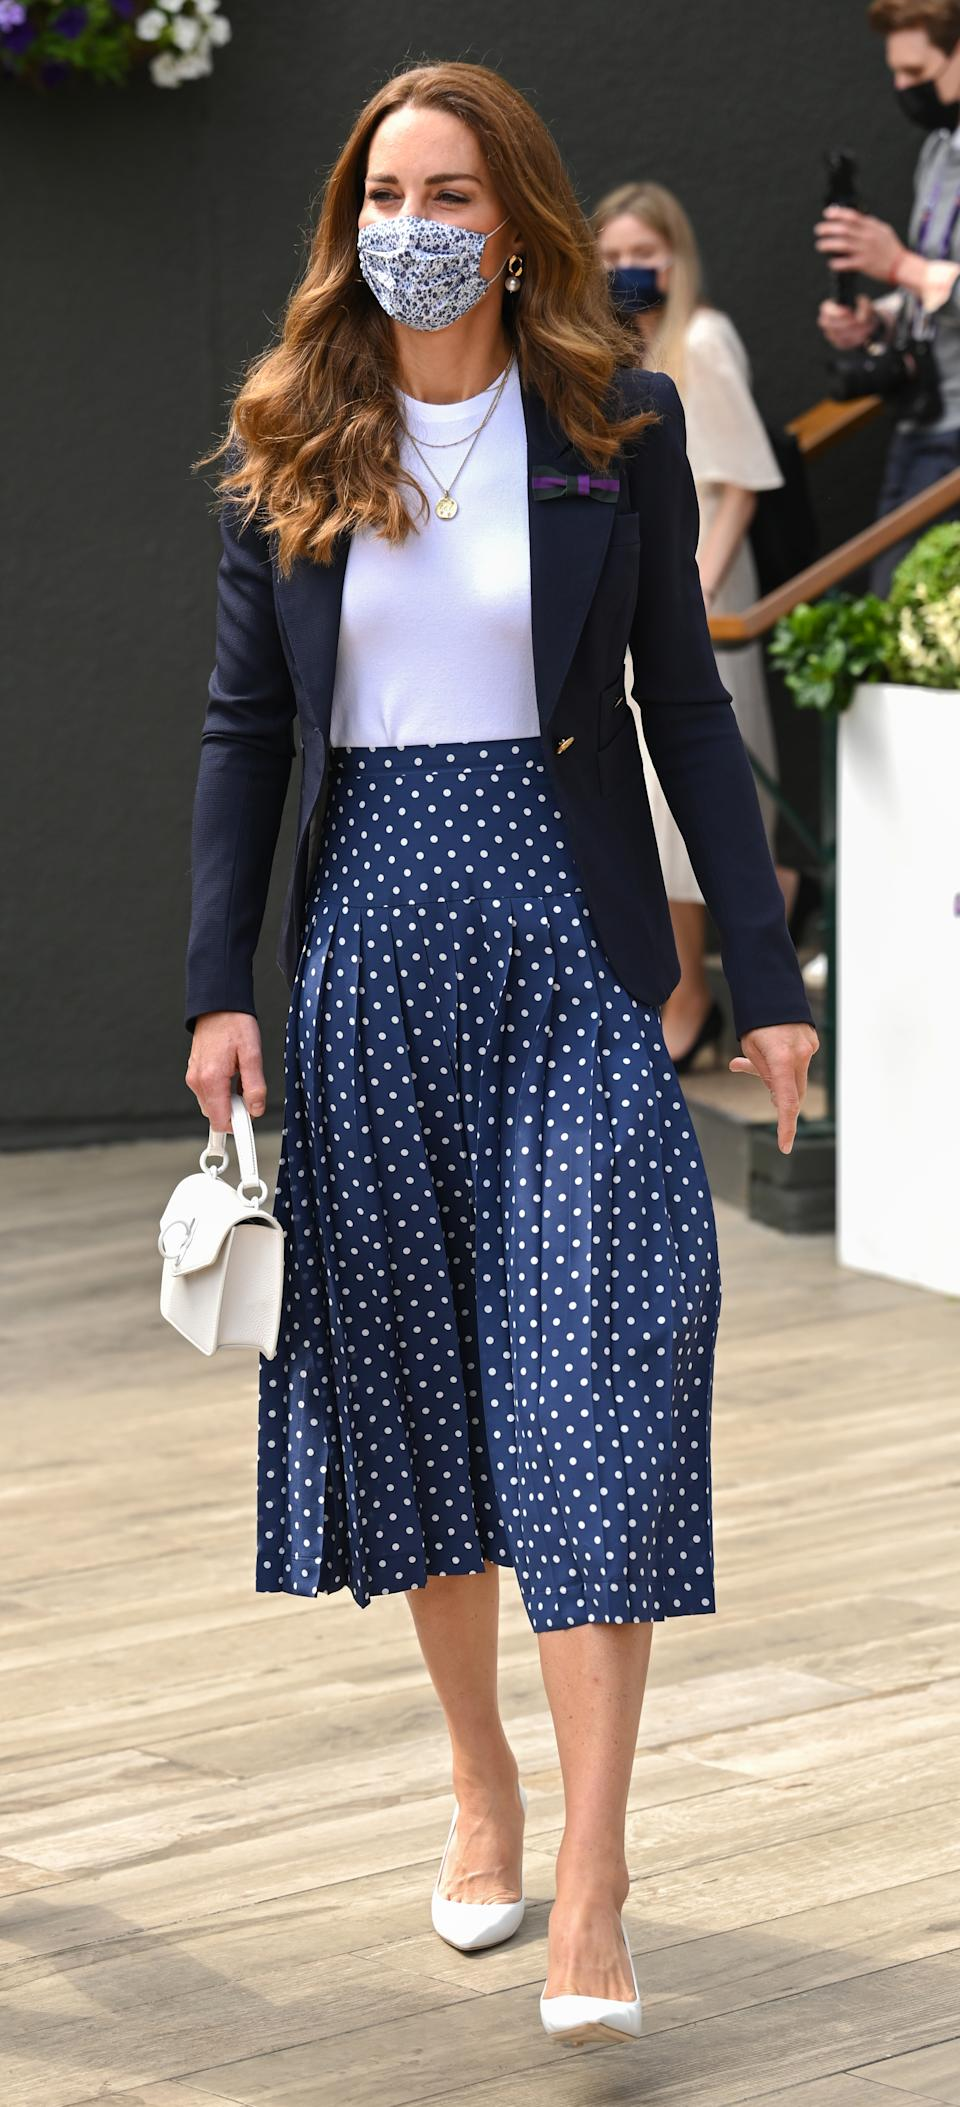 The Duchess of Cambridge attends Wimbledon Championships Tennis Tournament at All England Lawn Tennis and Croquet Club on July 2, 2021, in London,  wearing an Alessandra Rich skirt.  (Getty Images)